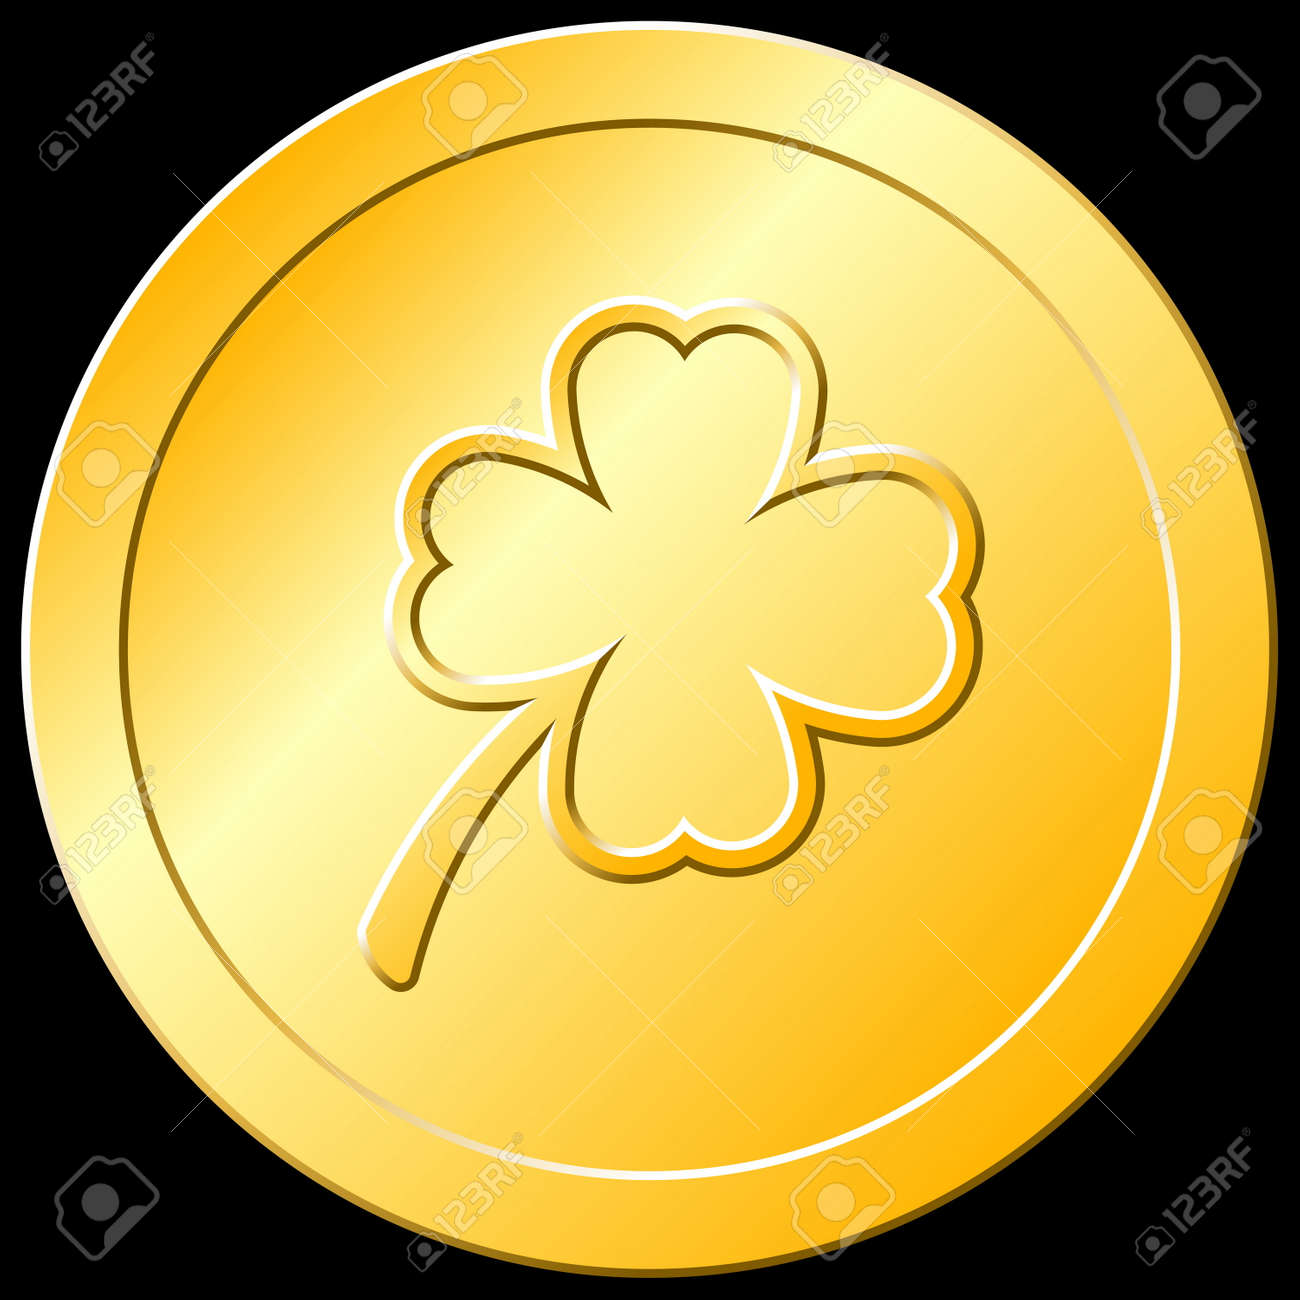 gold shamrock coin royalty free cliparts vectors and stock